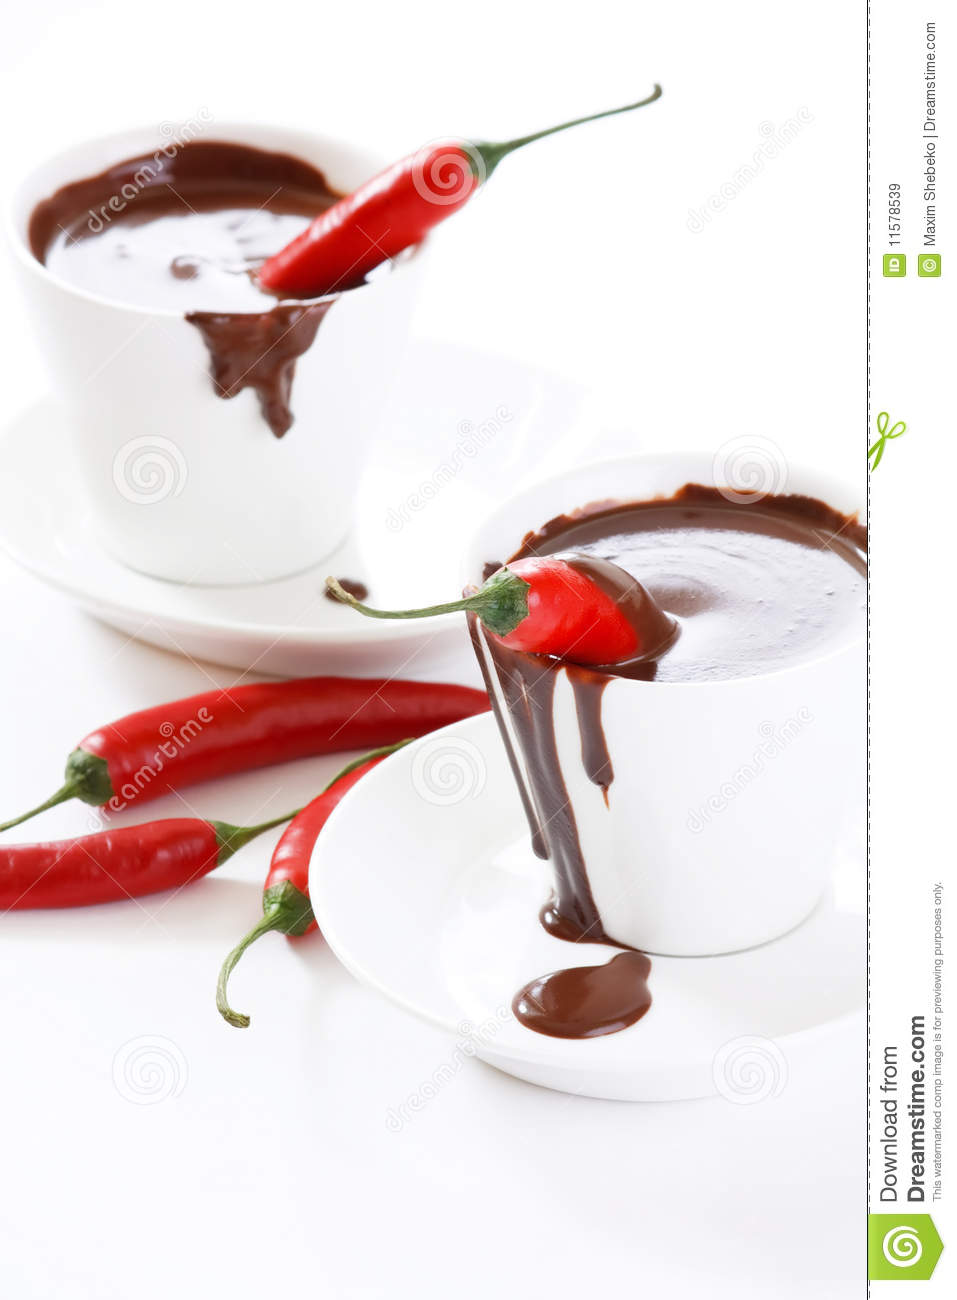 Hot Chocolate With Chili Royalty Free Stock Images - Image: 11578539